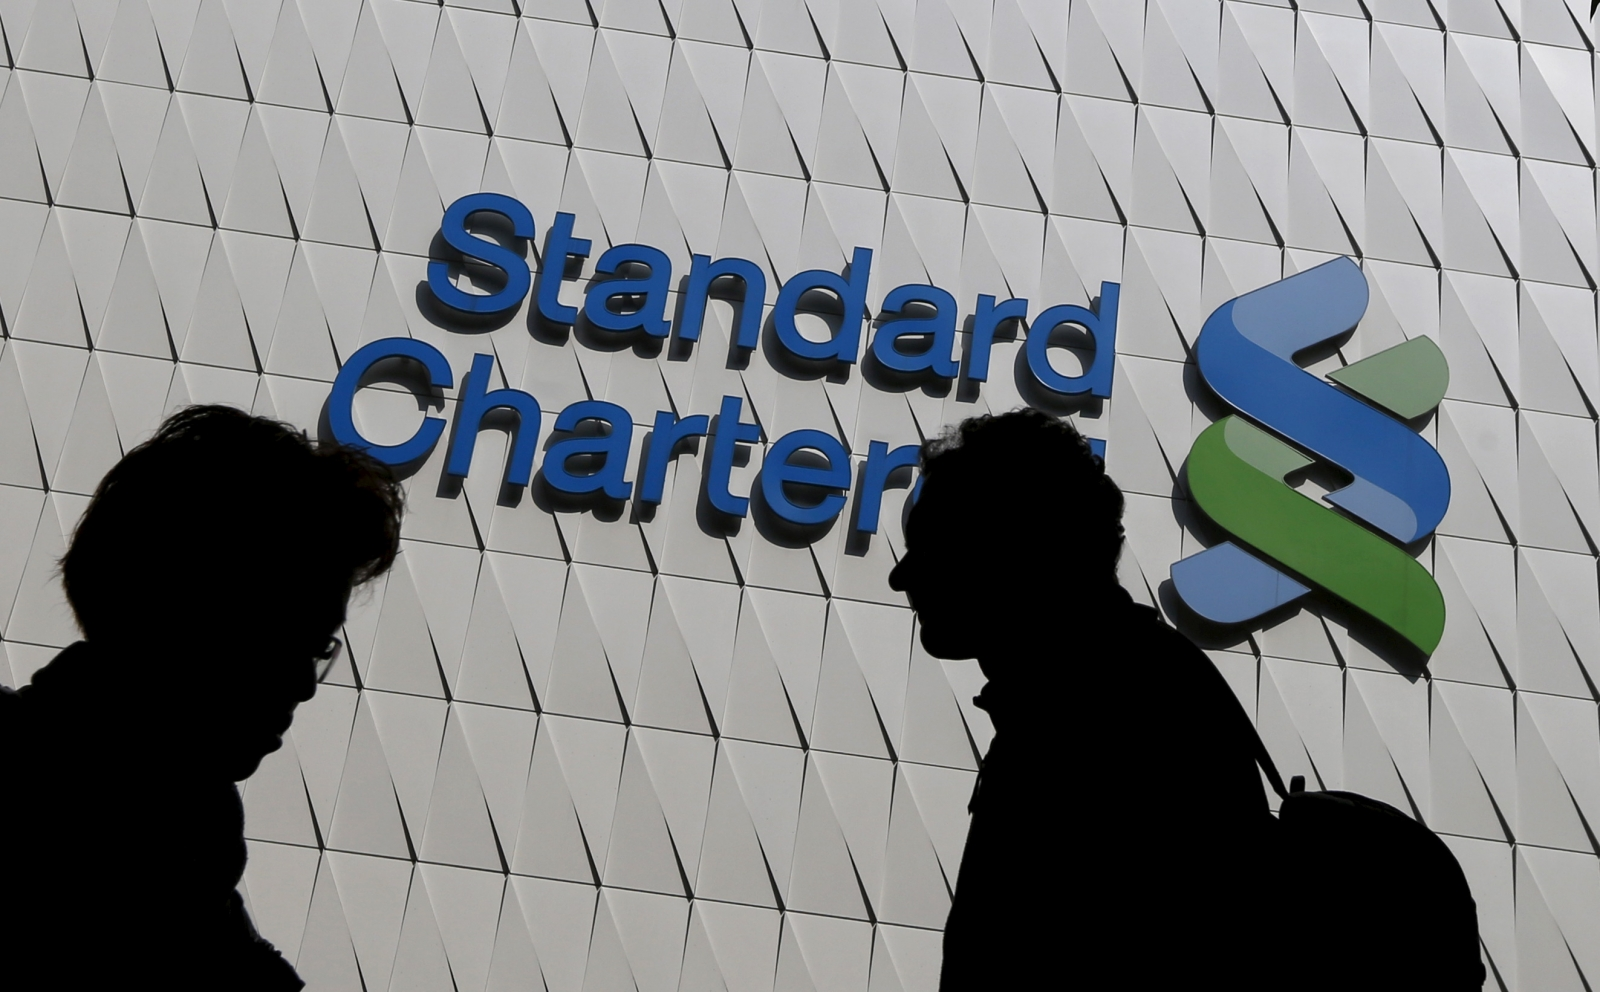 Standard Chartered says earnings are 'not yet acceptable' as it reports third quarter operating income of $3.47bn